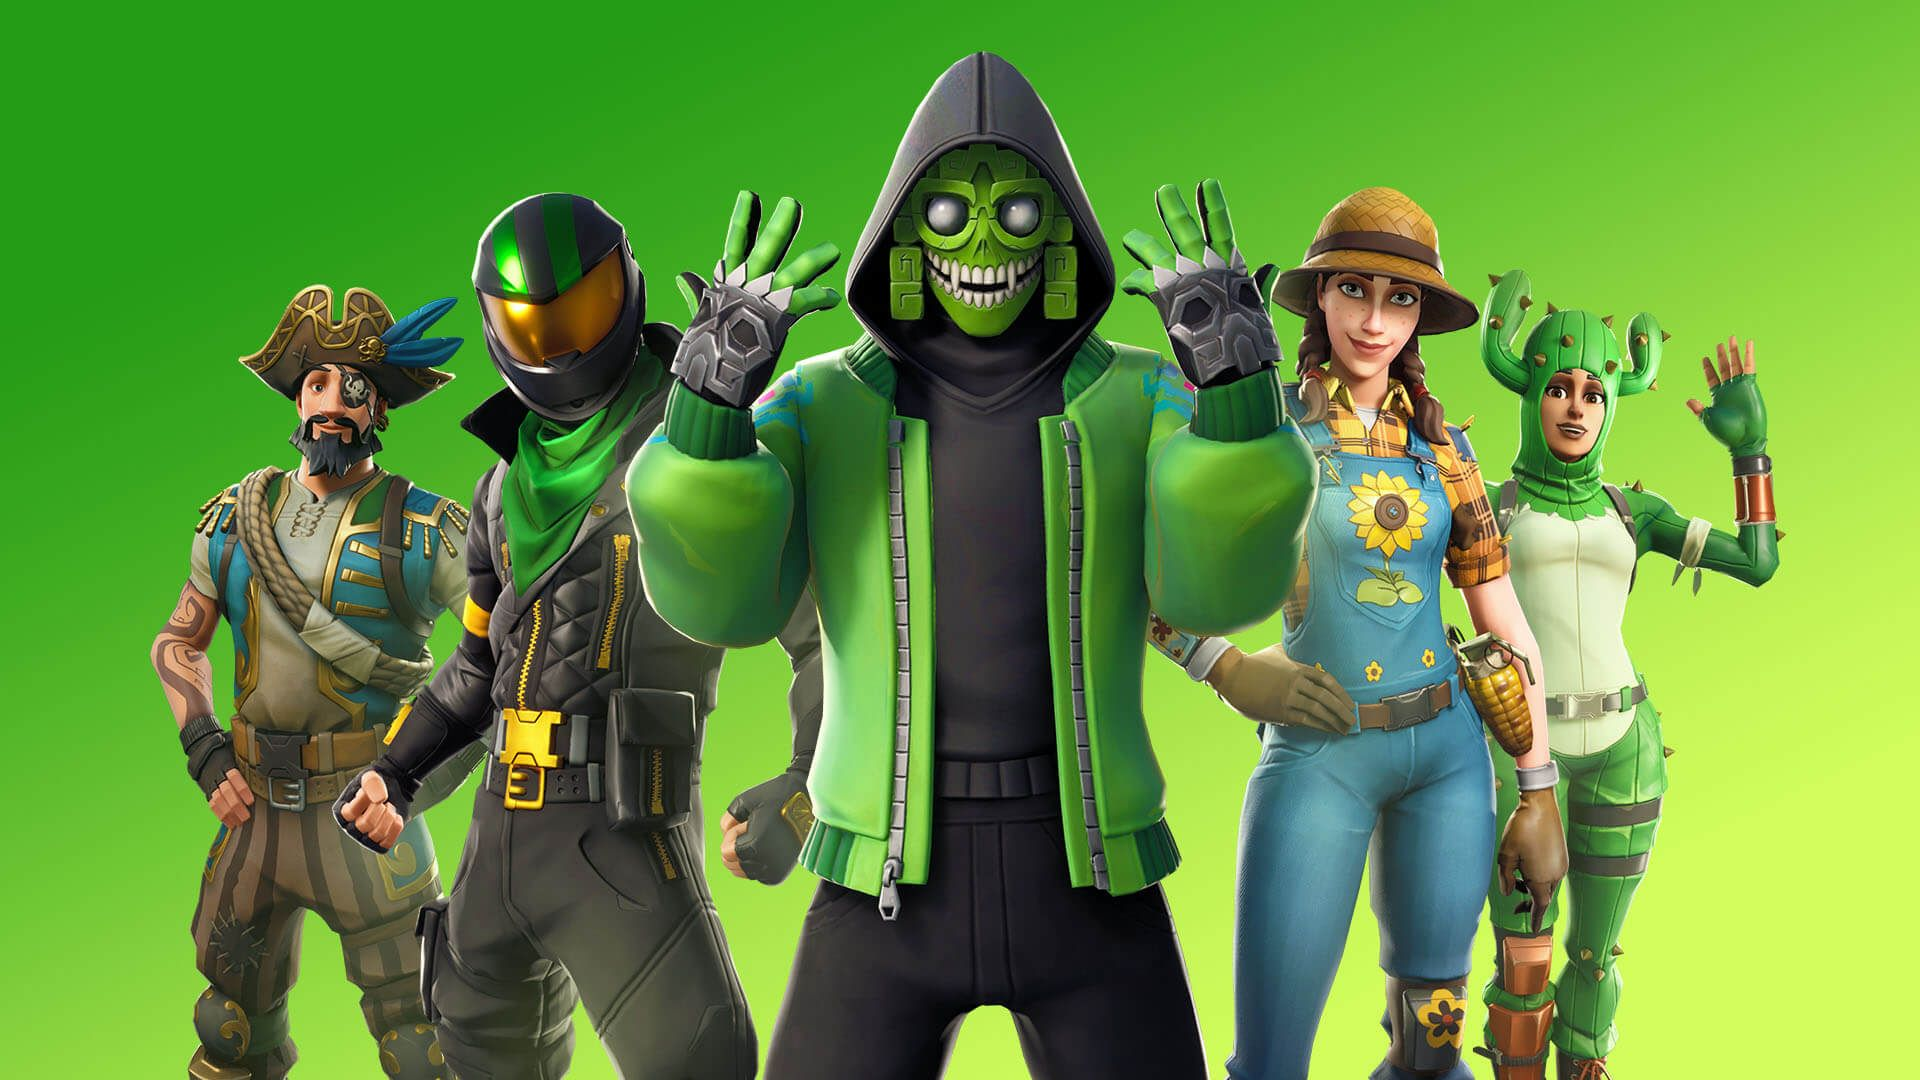 Bots In Fortnite Chapter 2 Are Way Worse Than Everyone Expected While Not Many Expected The Newly Added Bots In Fortnit Fortnite Fortnite Season 11 Epic Games